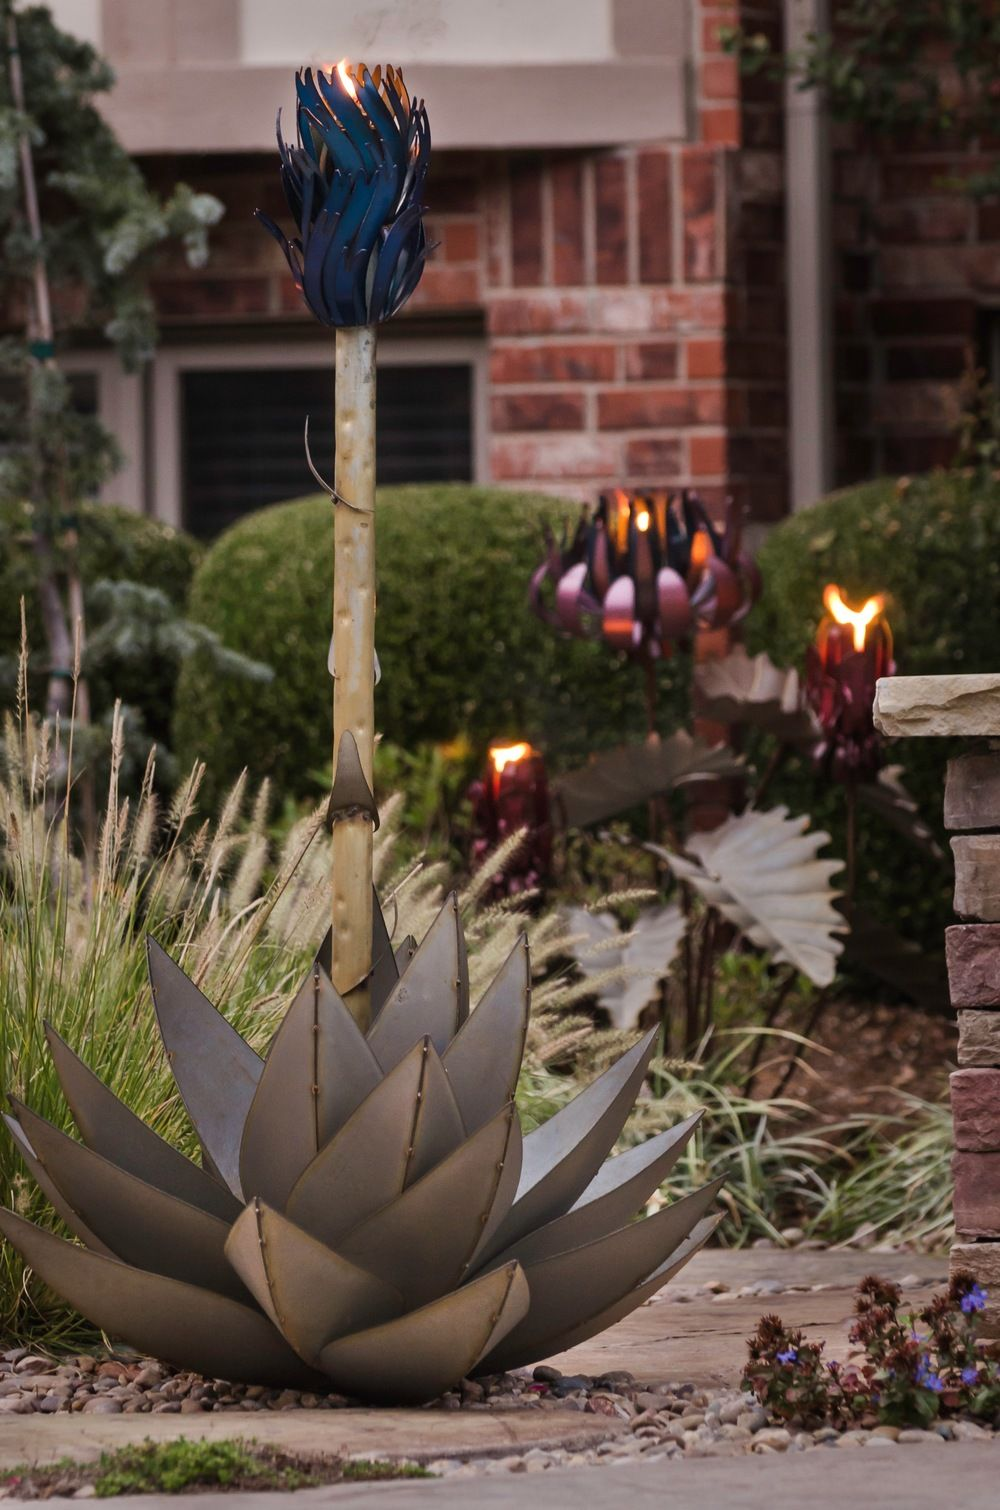 Pin by Nick Sinklier on Landscape | Pinterest | Garden torch and Agaves